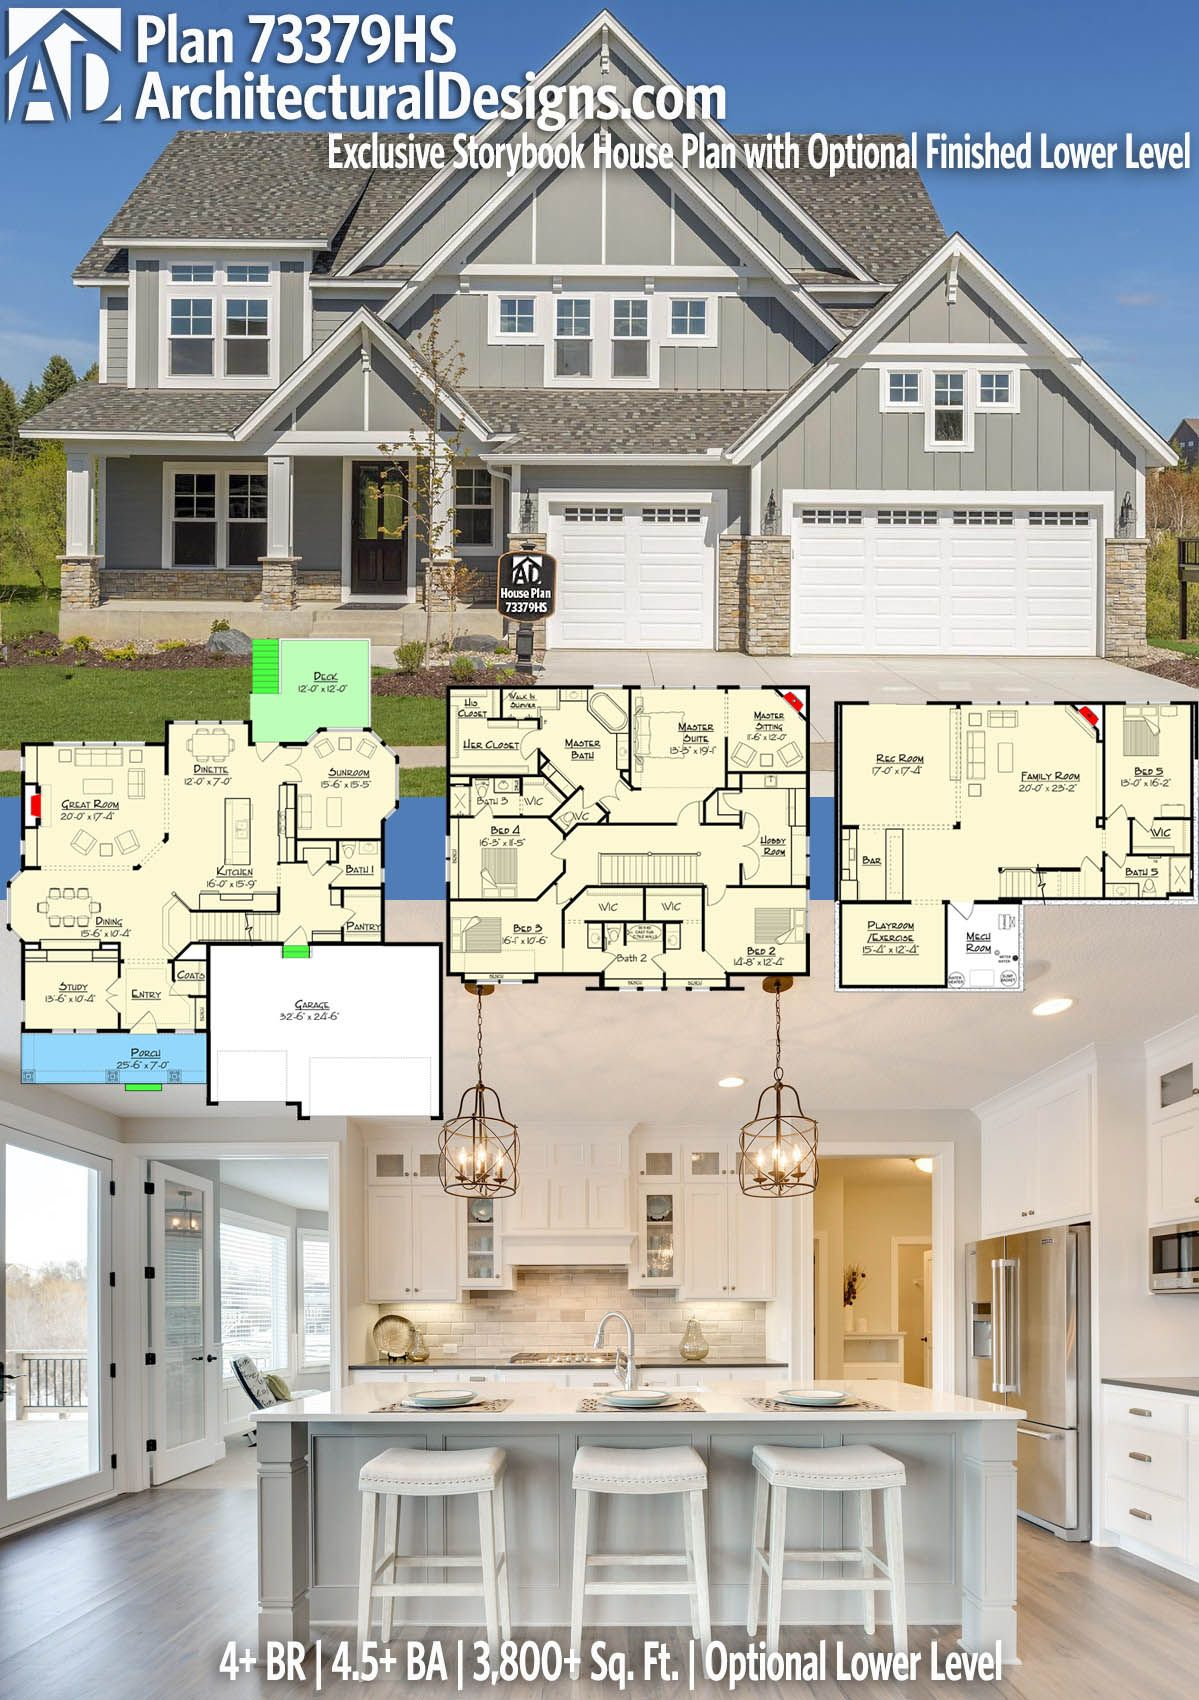 Plan 73379hs Exclusive Storybook House Plan With Optional Finished